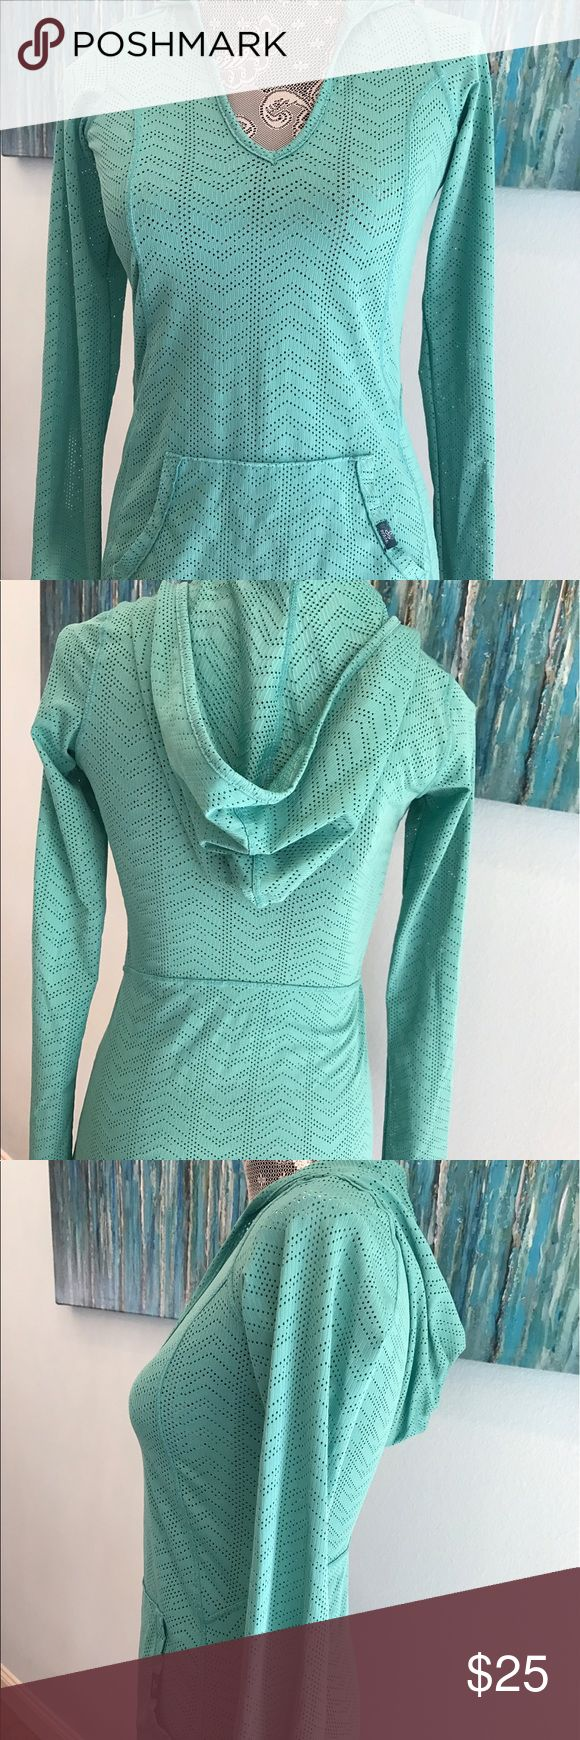 Prana Turquoise Mesh Hoodie 🇺🇸Sale Perfect for a workout ... venting with the mesh style fabric! Beautiful turquoise color! Flat pocket front adds cute character! Made in the USA 96% Polyester/ 4% Spandex Size XS Prana Tops Tees - Long Sleeve